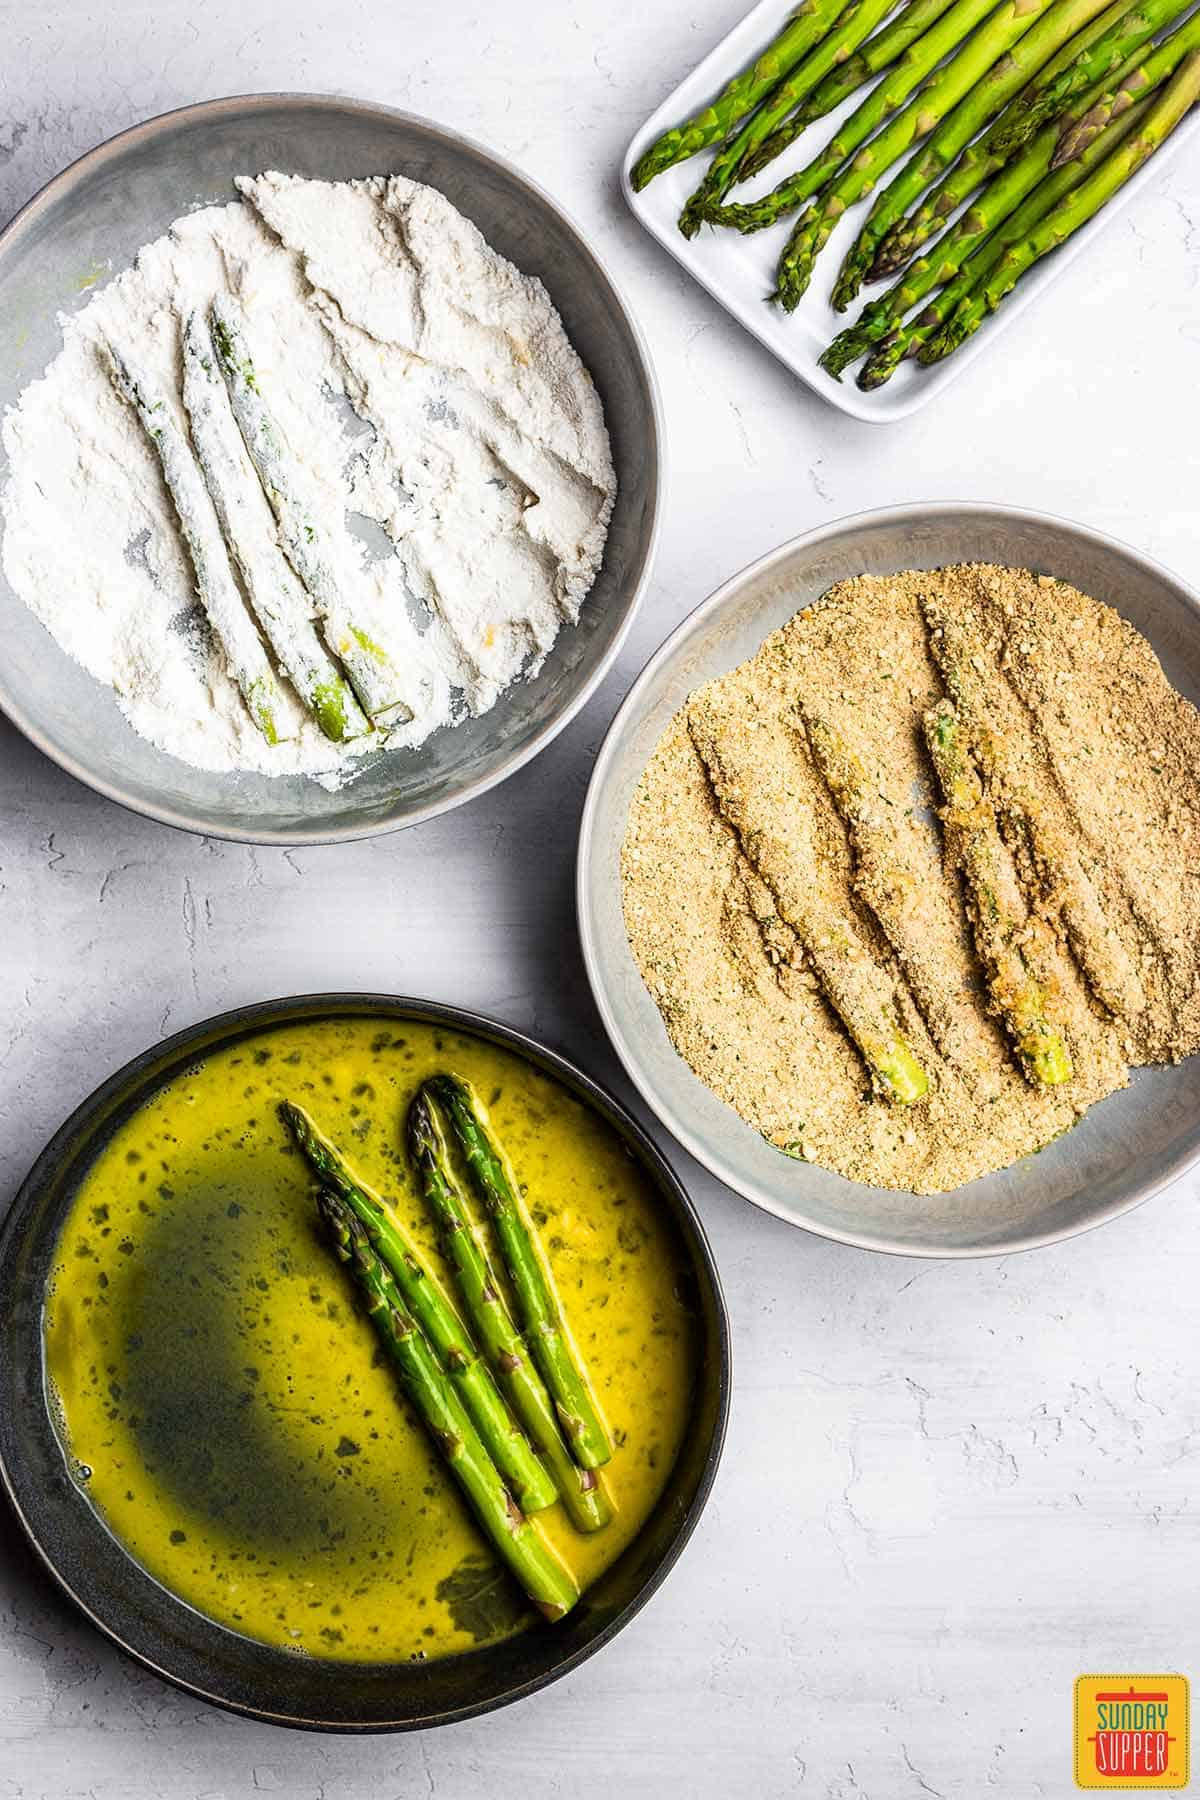 Asparagus in egg, in flour, and in breadcrumbs for asparagus fries